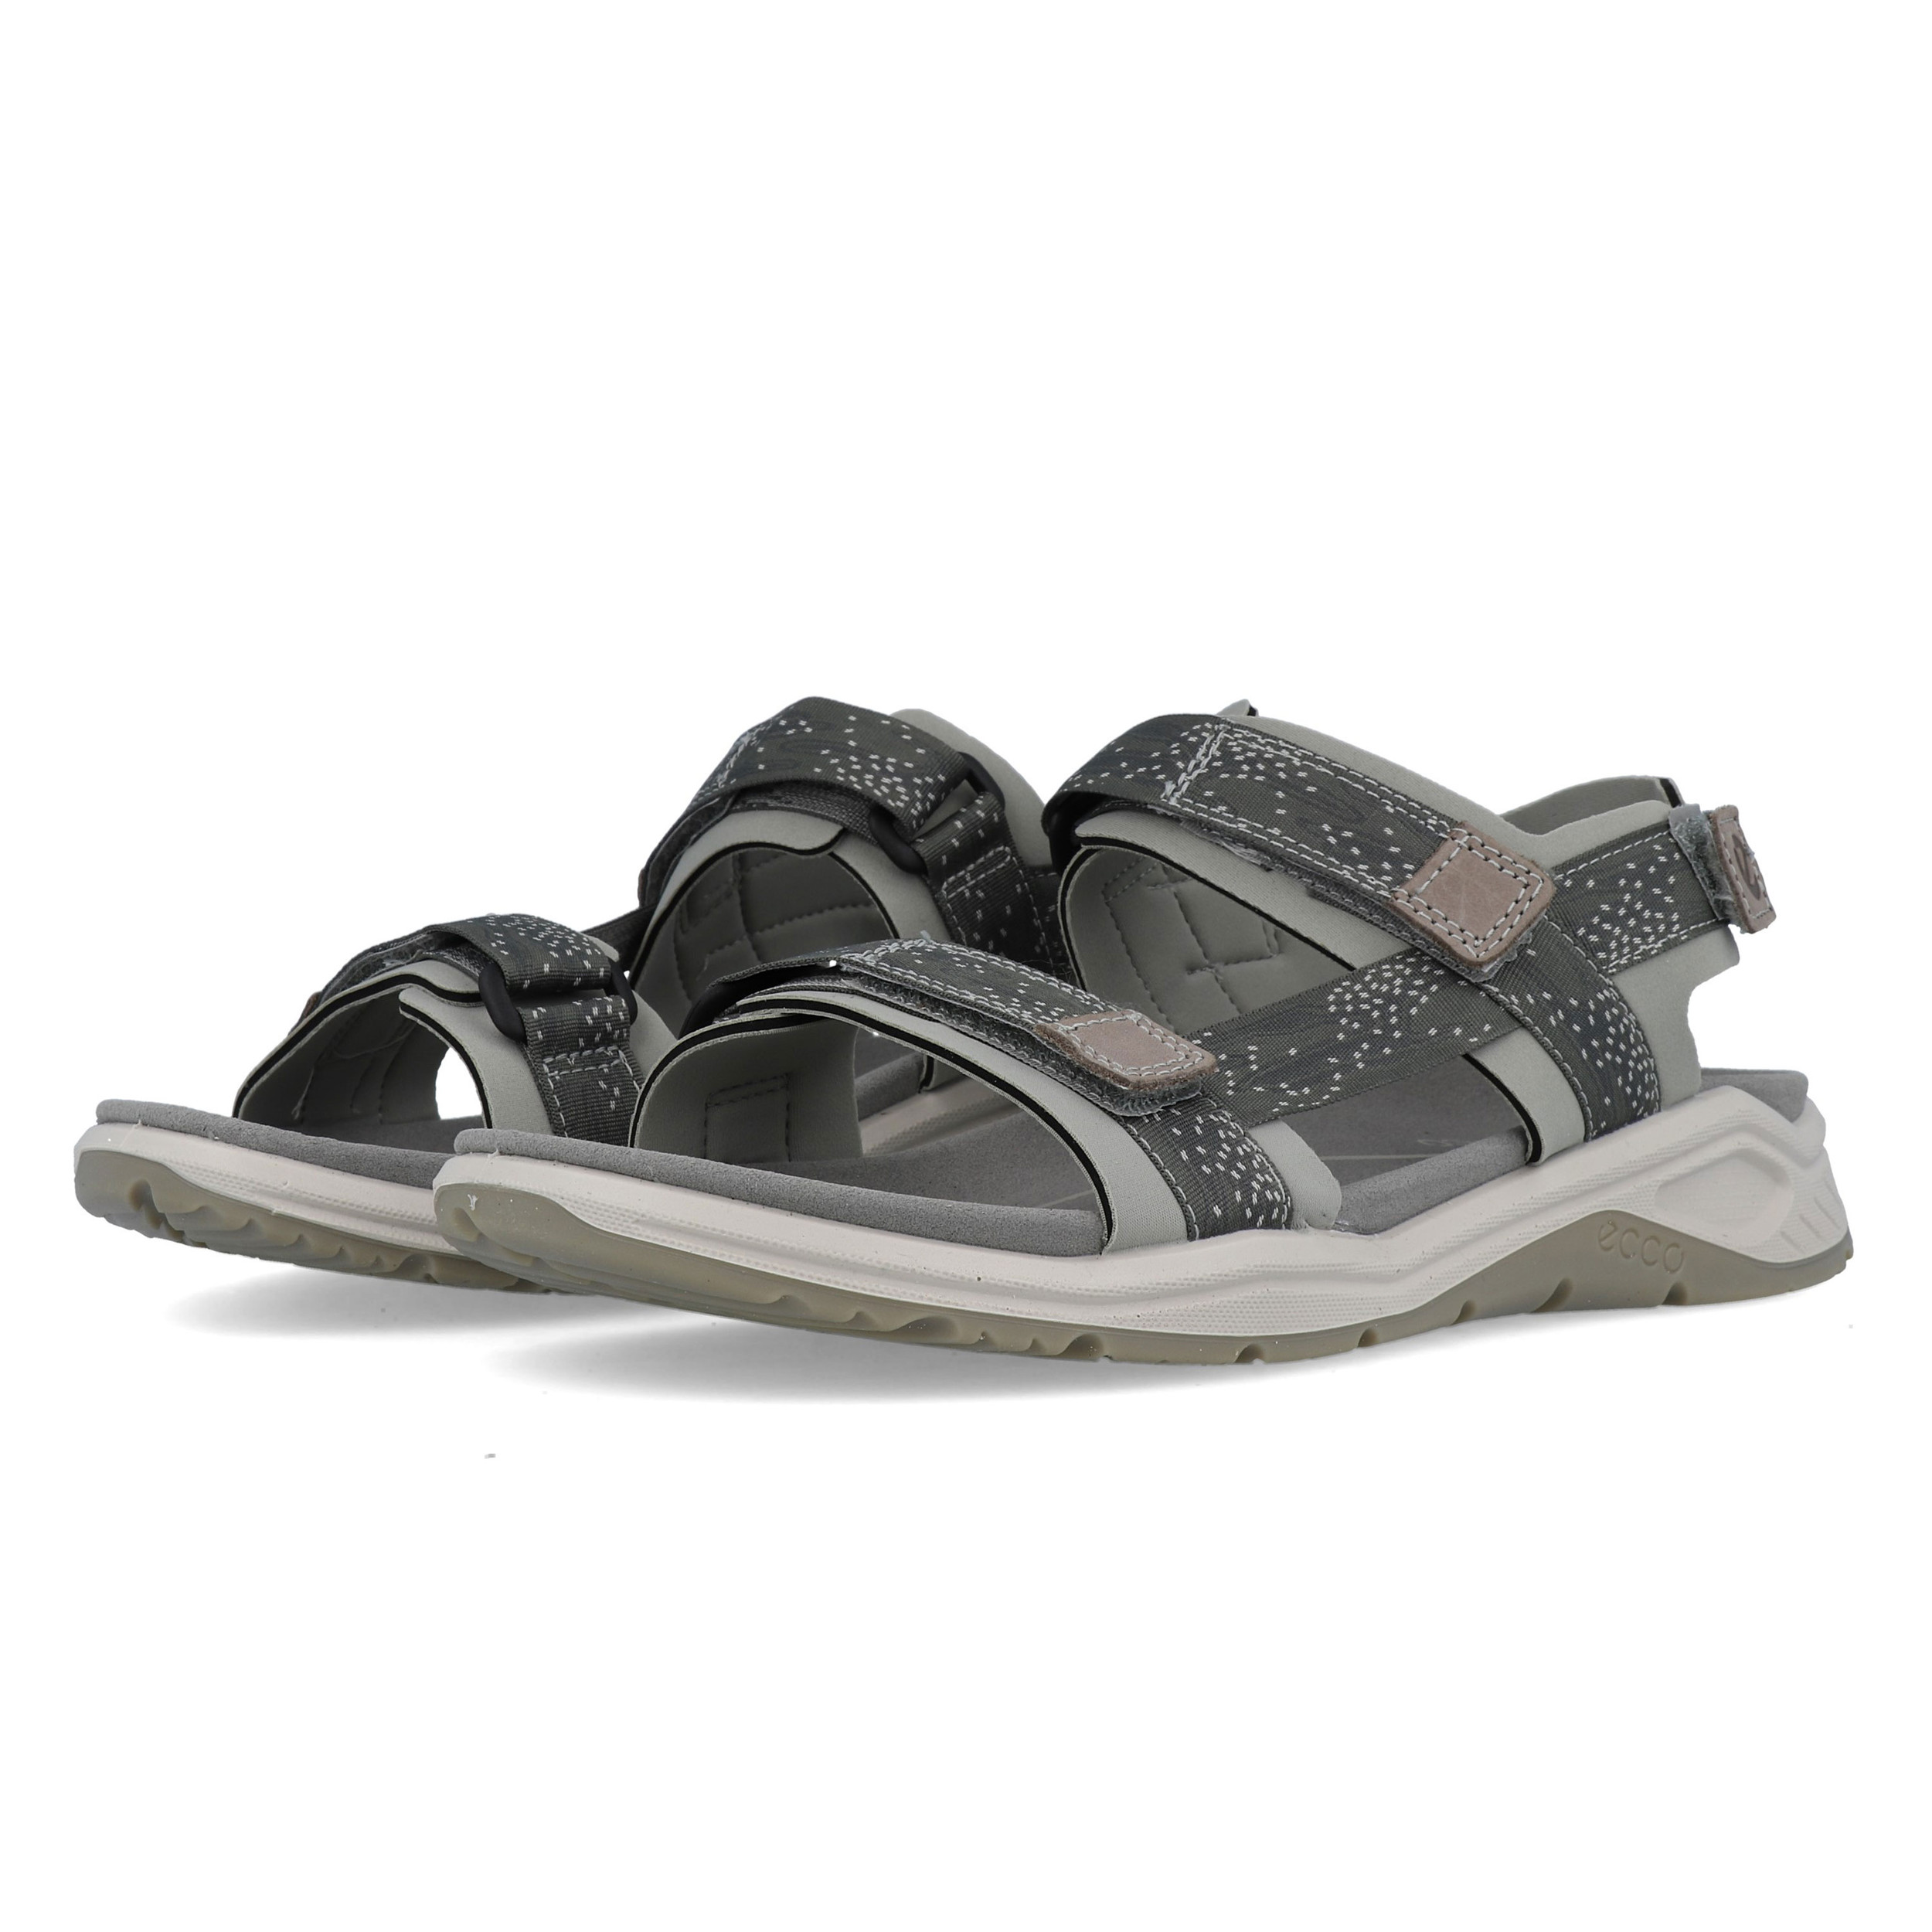 26a60fe53437c Details about Ecco Womens X Trinsic Walking Shoes Sandals Grey Sports  Outdoors Breathable